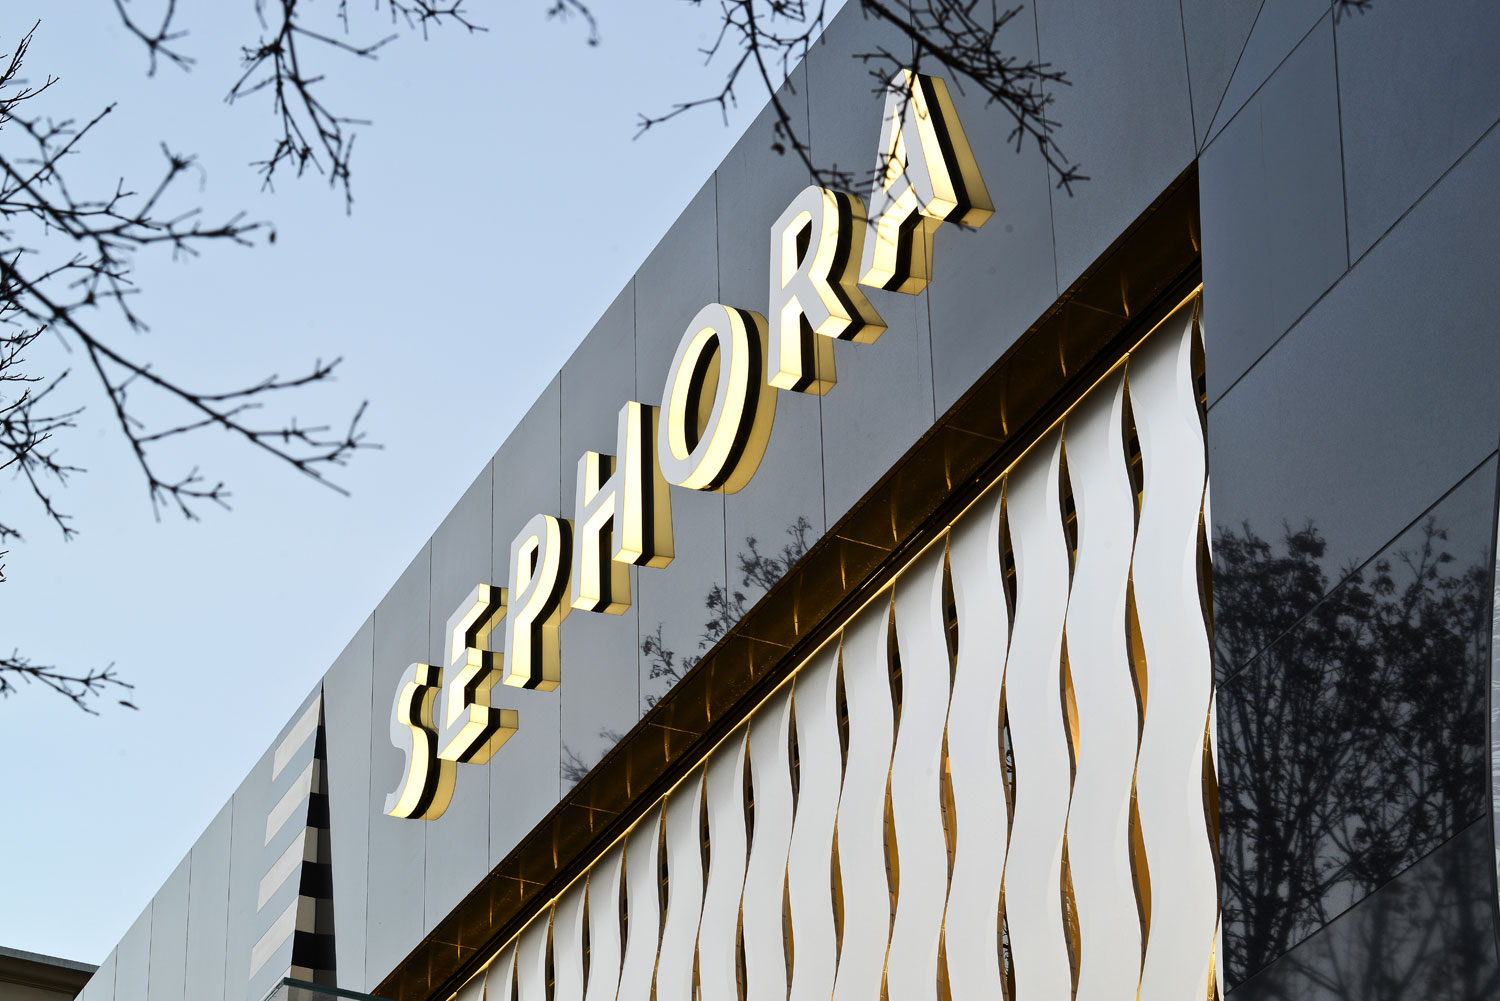 Sephora, Retail Store, Canada, Francl Architecture, Keith Panel Systems, Alucobond NaturAL, ACM, Daniel Lunghi